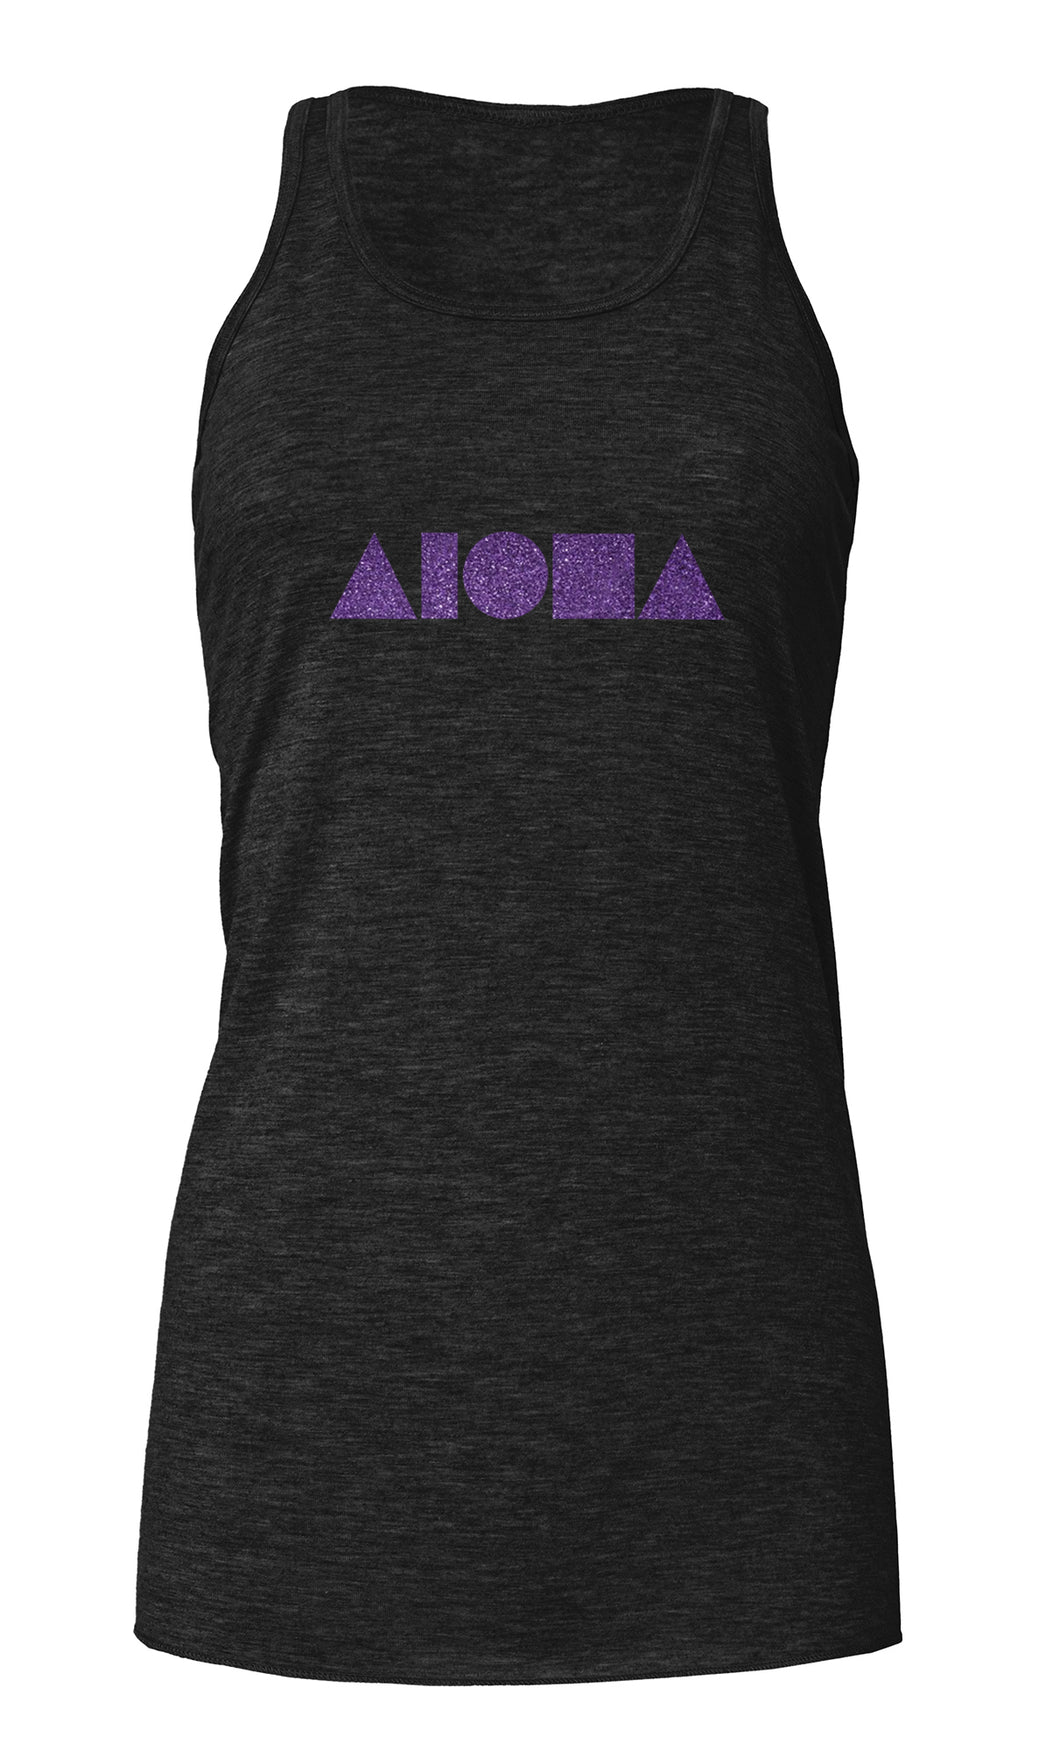 Aloha Shapes Heather Black & Purple Women's Flowy Racerback Tank